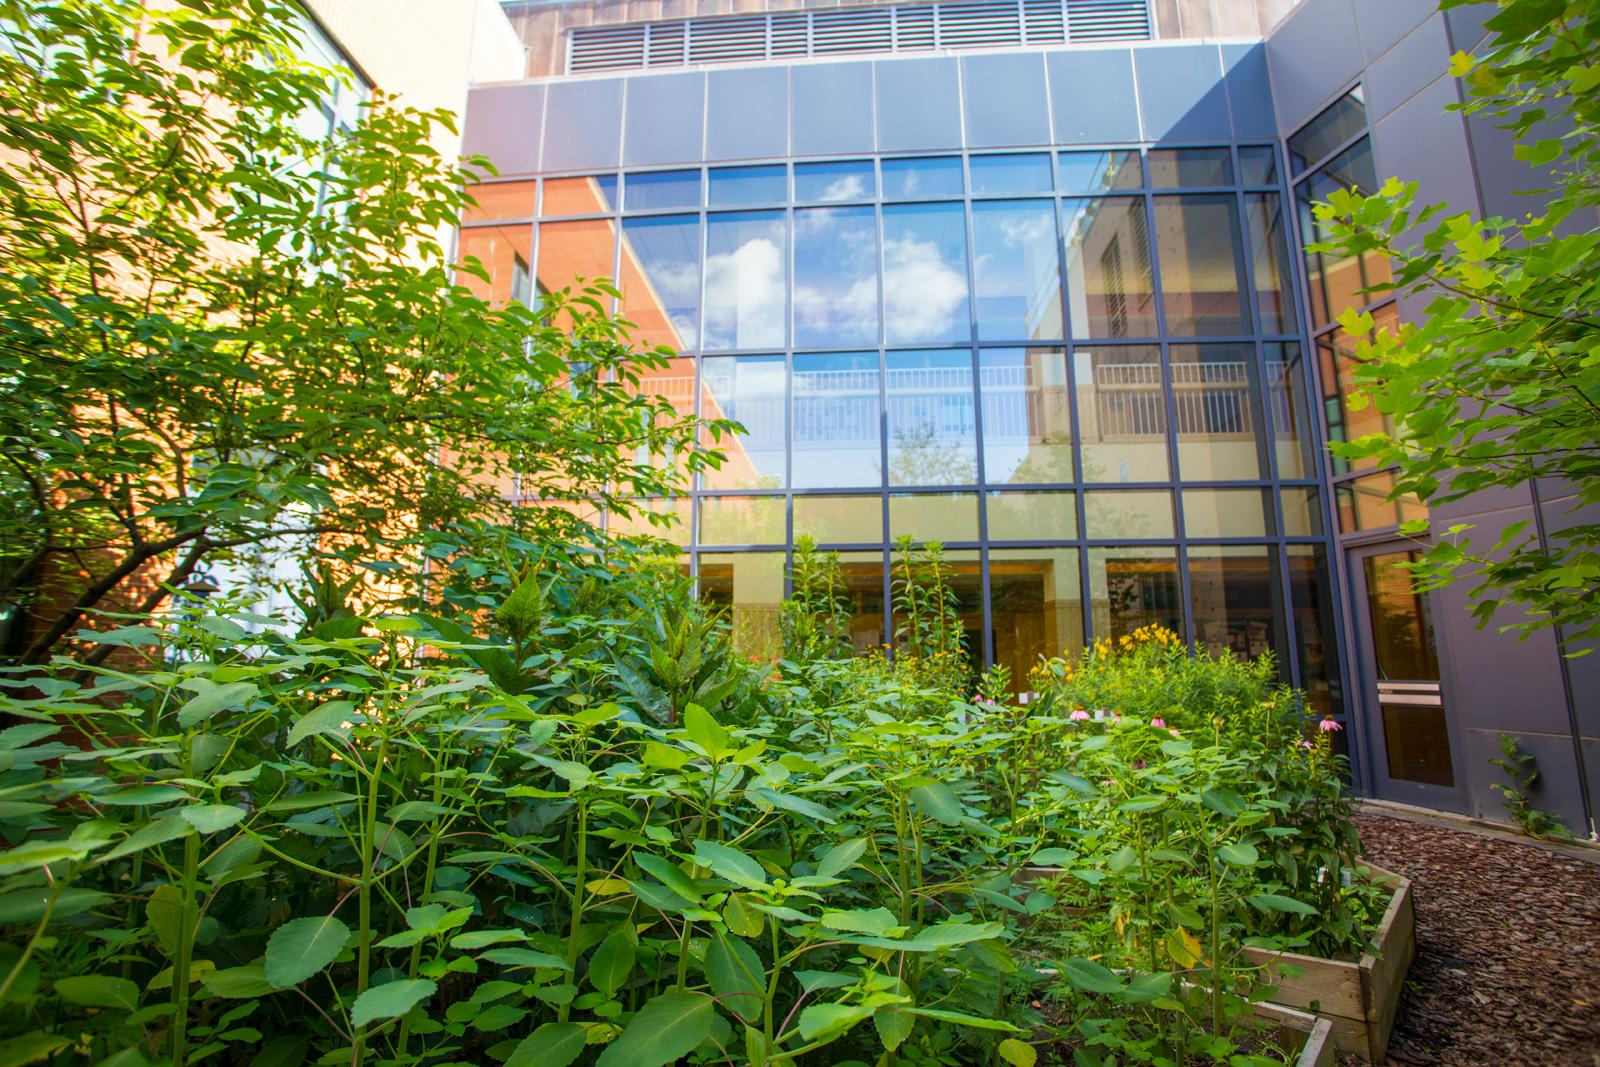 Lush green plants against the glass wall of a building.